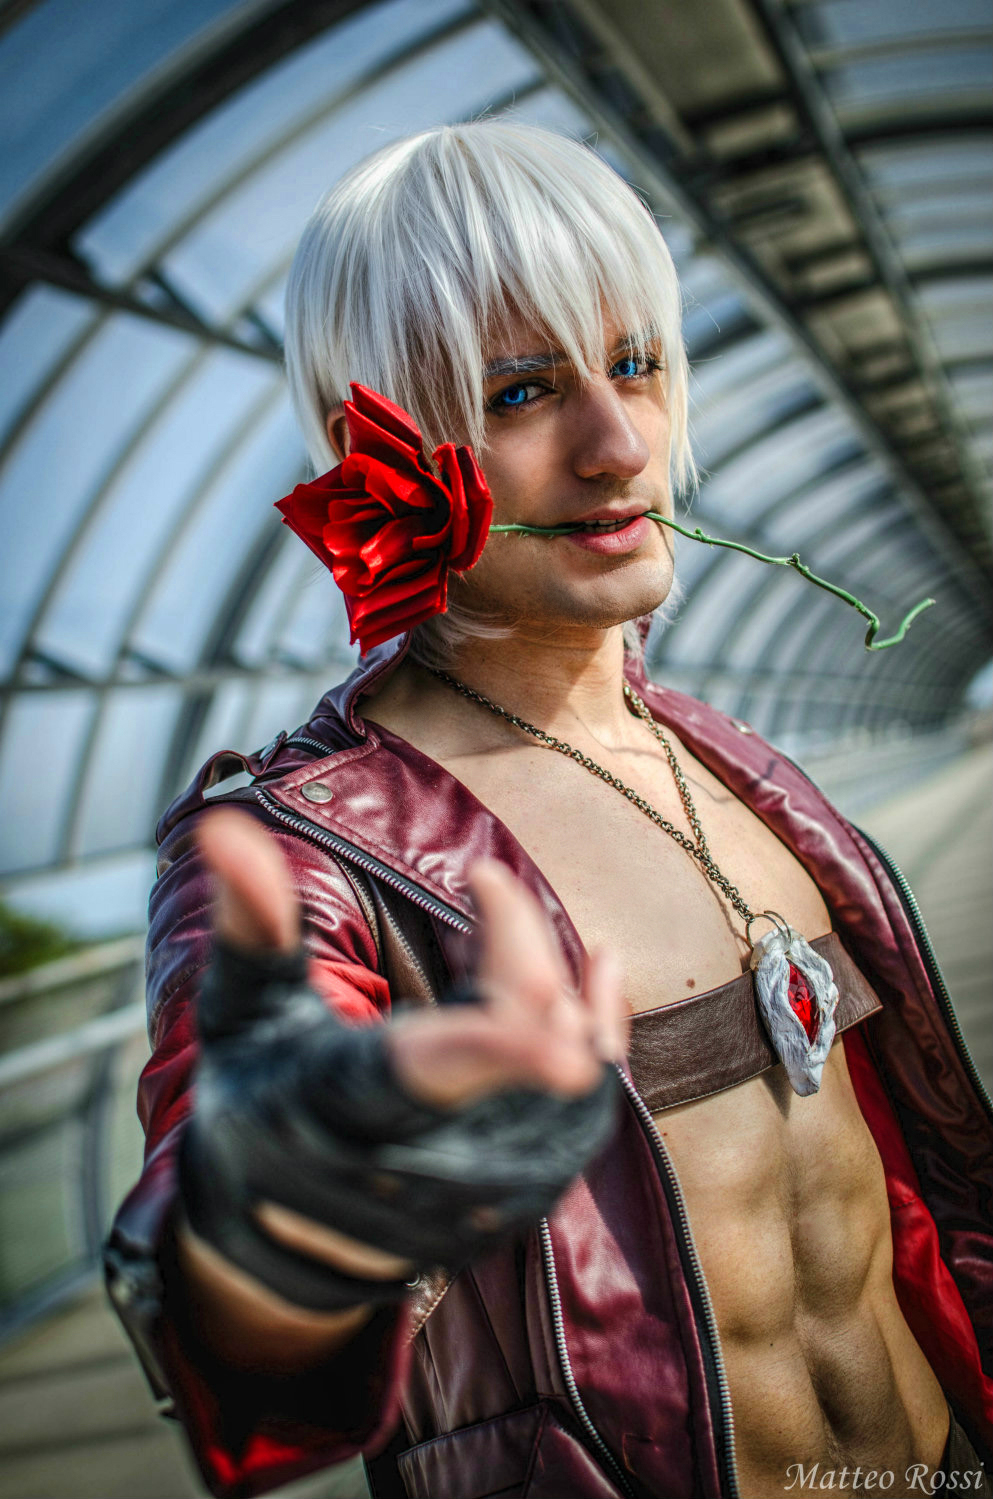 Vote for Dante - Leon Chiro Cosplay Art by LeonChiroCosplayArt